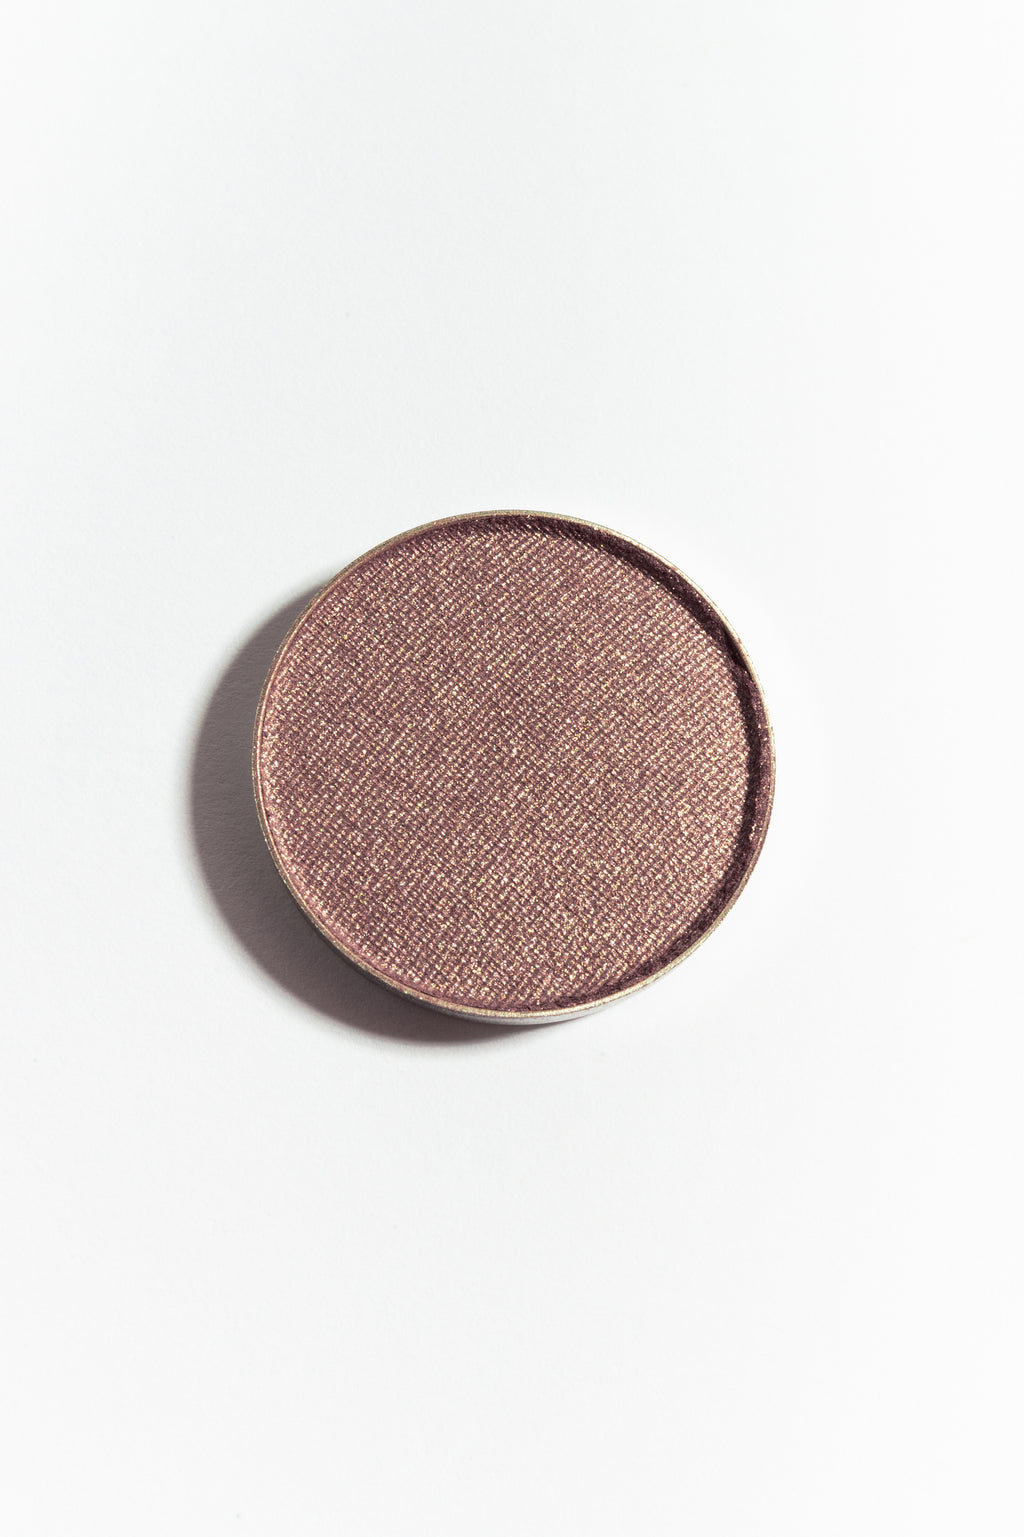 Eye shadow pan in Iced Malted